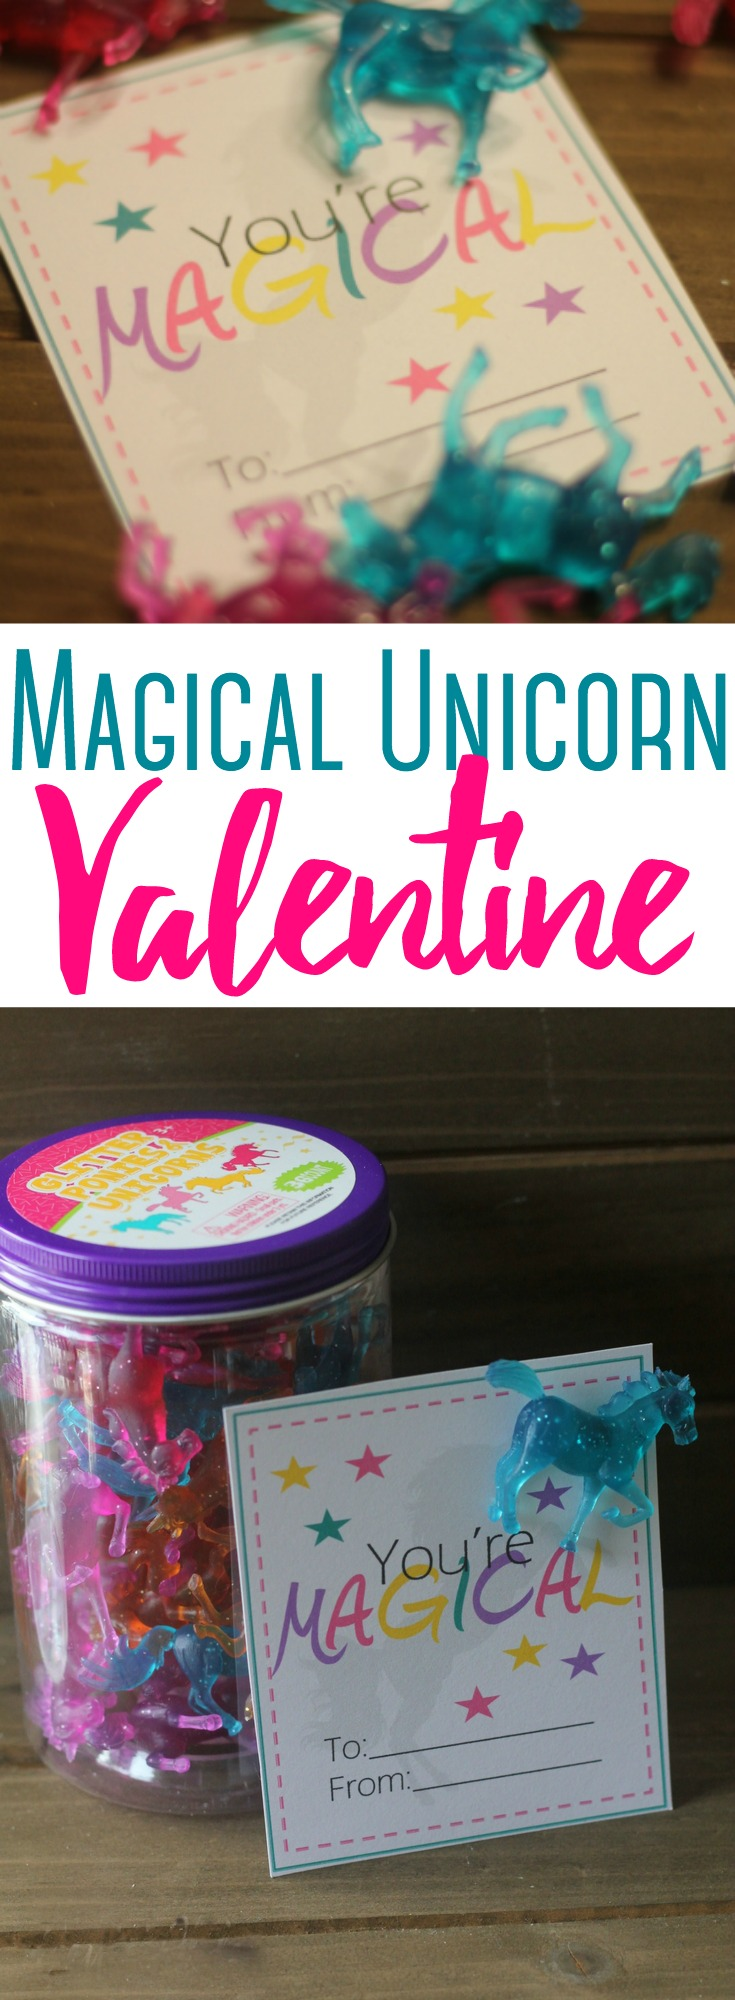 Magical Unicorn Valentine:  Valentine's Day is always so magical.... especially for little girls!  These Unicorn Valentines (with free printable) are easy to assemble and put together in a flash.   #Valentine #ValentinesDay #Unicorn #Printable #NonCandy #kids